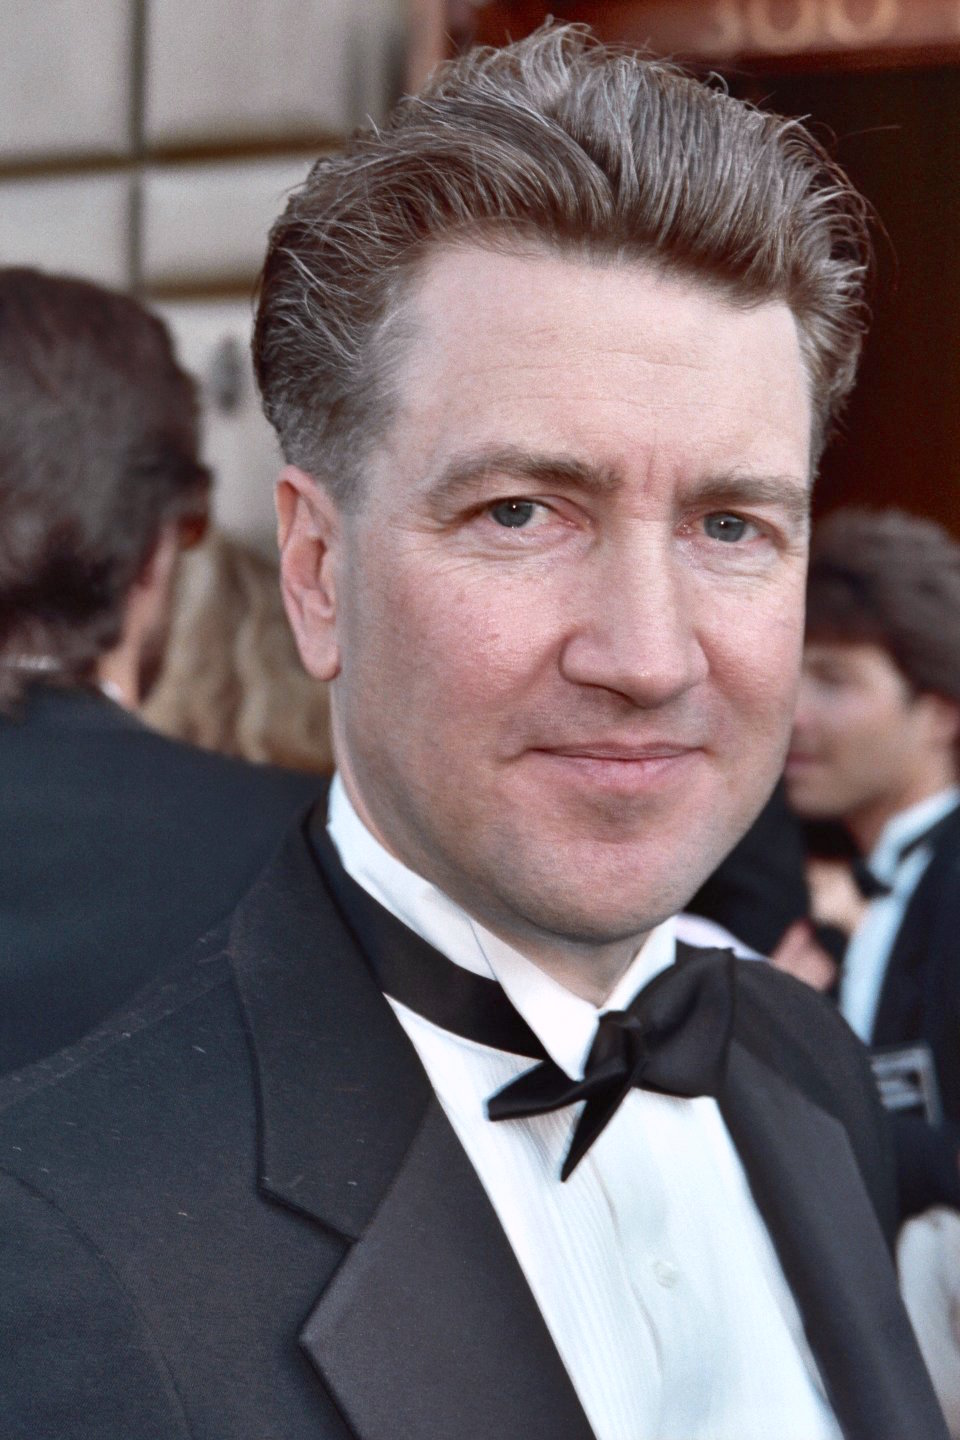 list of accolades received by david lynch